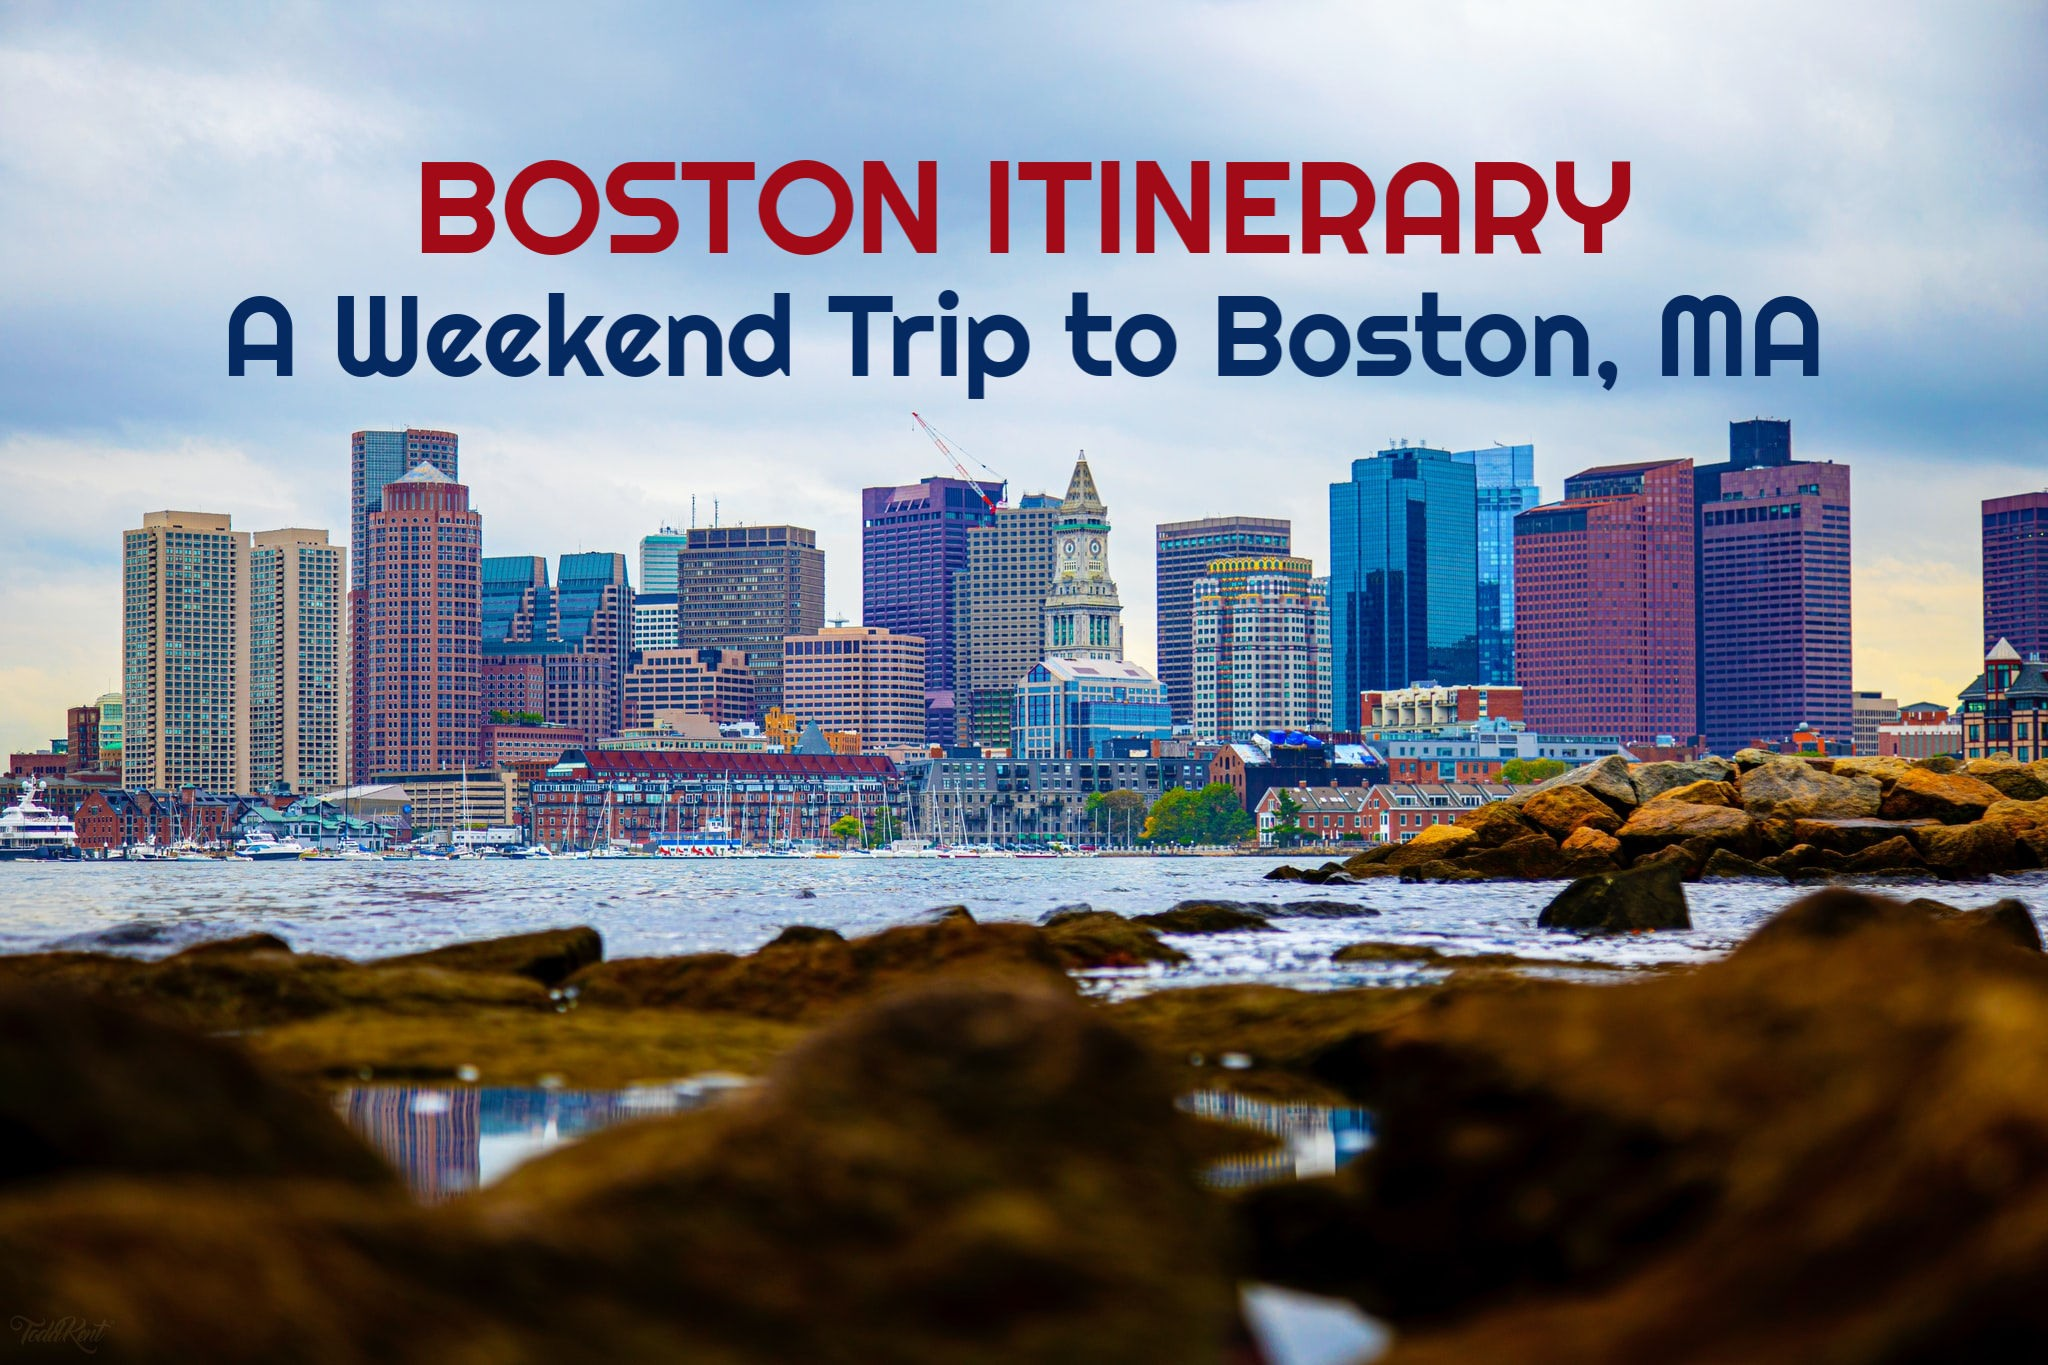 Boston Itinerary A Weekend Trip to Boston, MA by JetSettingFools.com